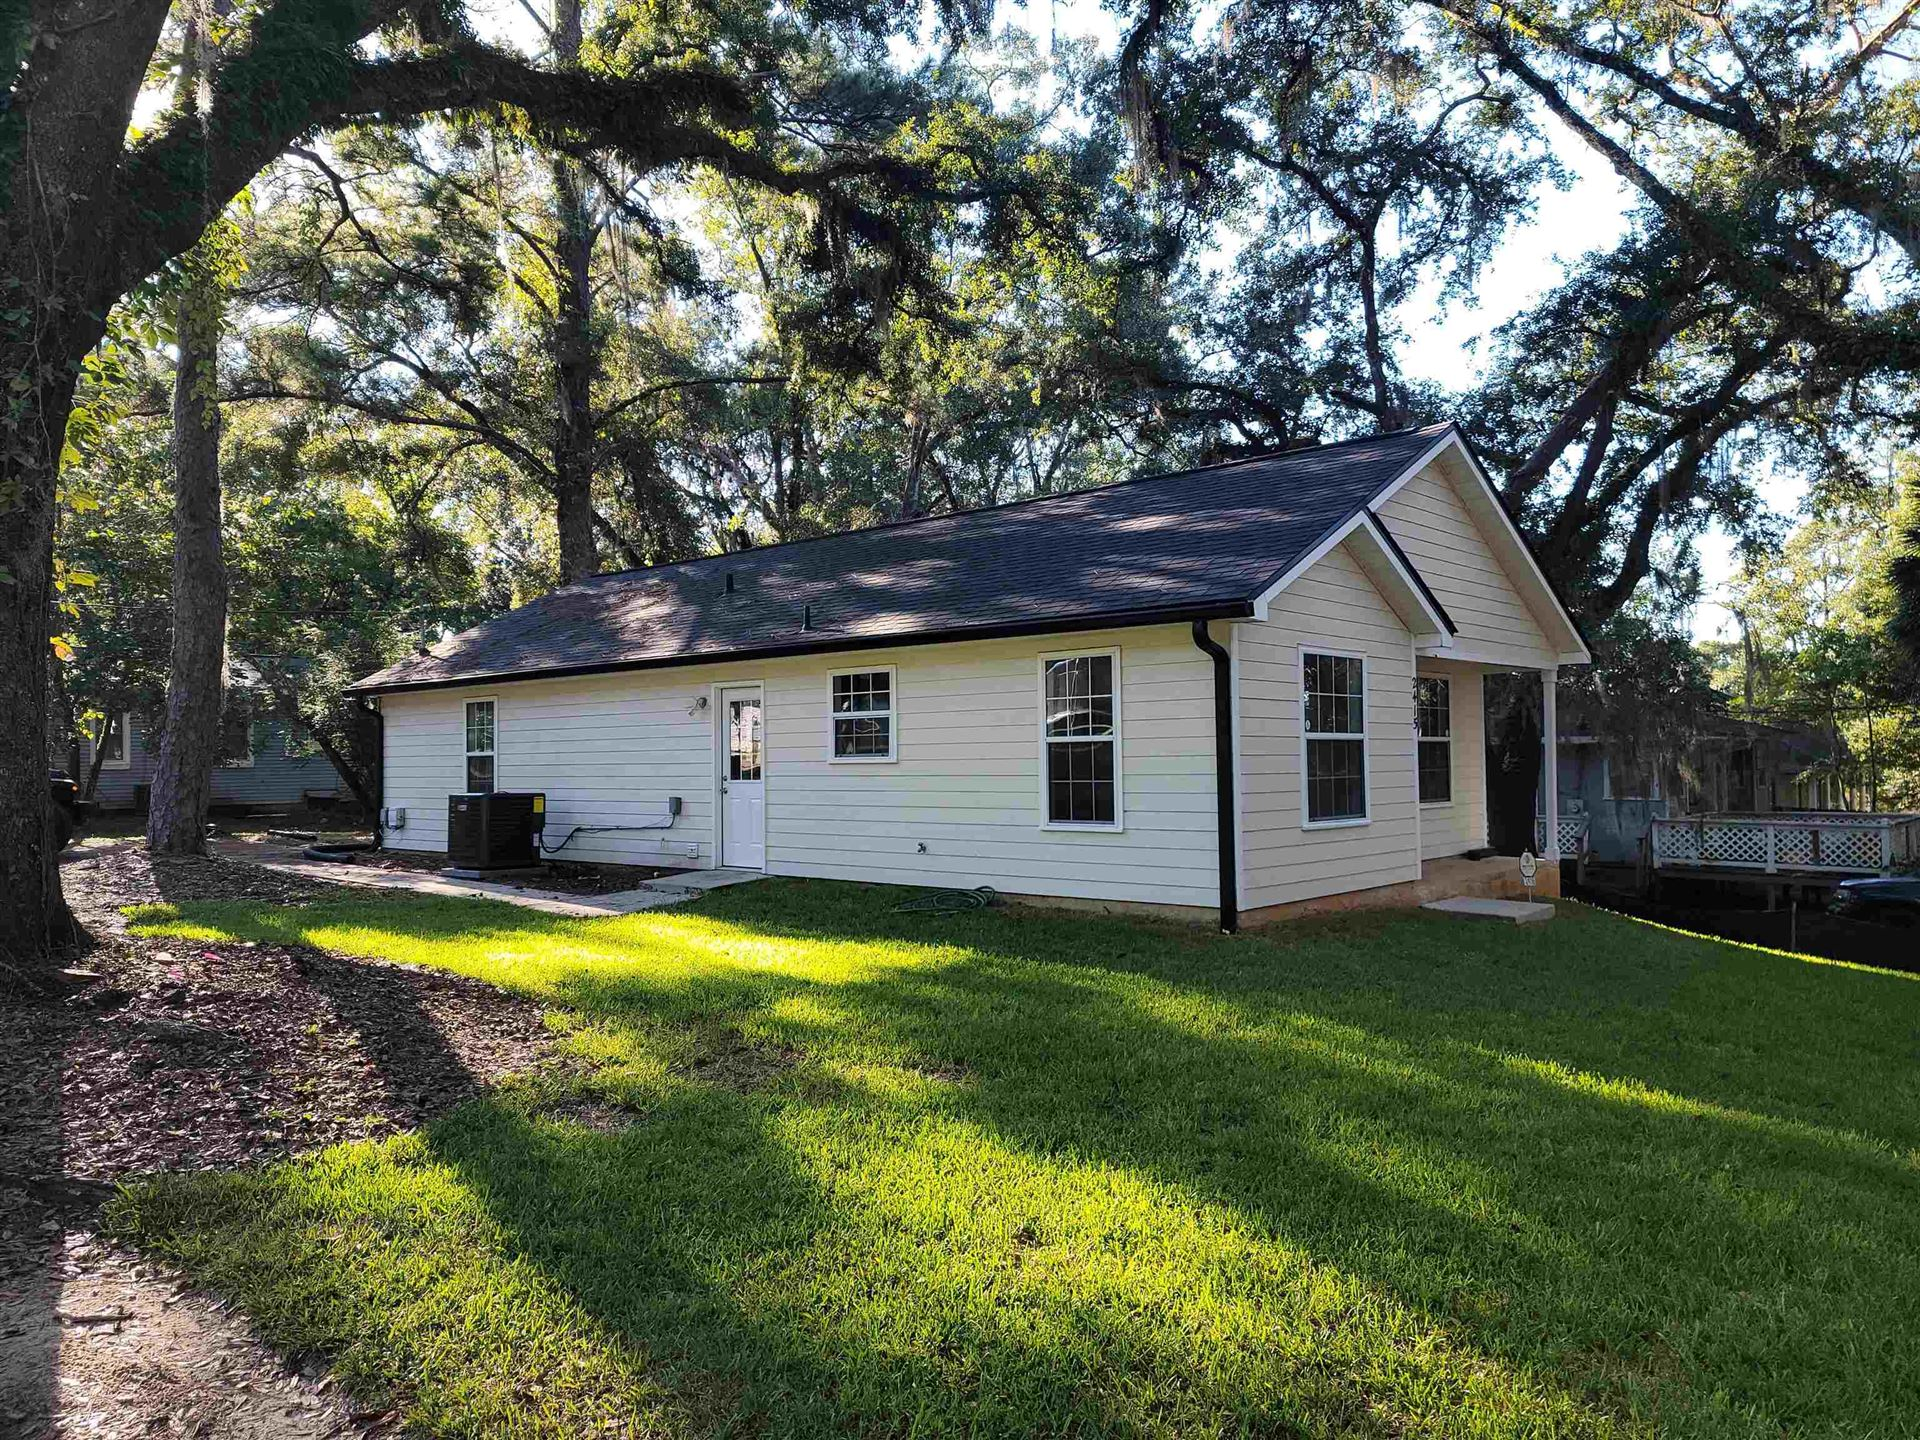 Photo of 2415 COUNTRY CLUB Drive, TALLAHASSEE, FL 32301 (MLS # 337723)